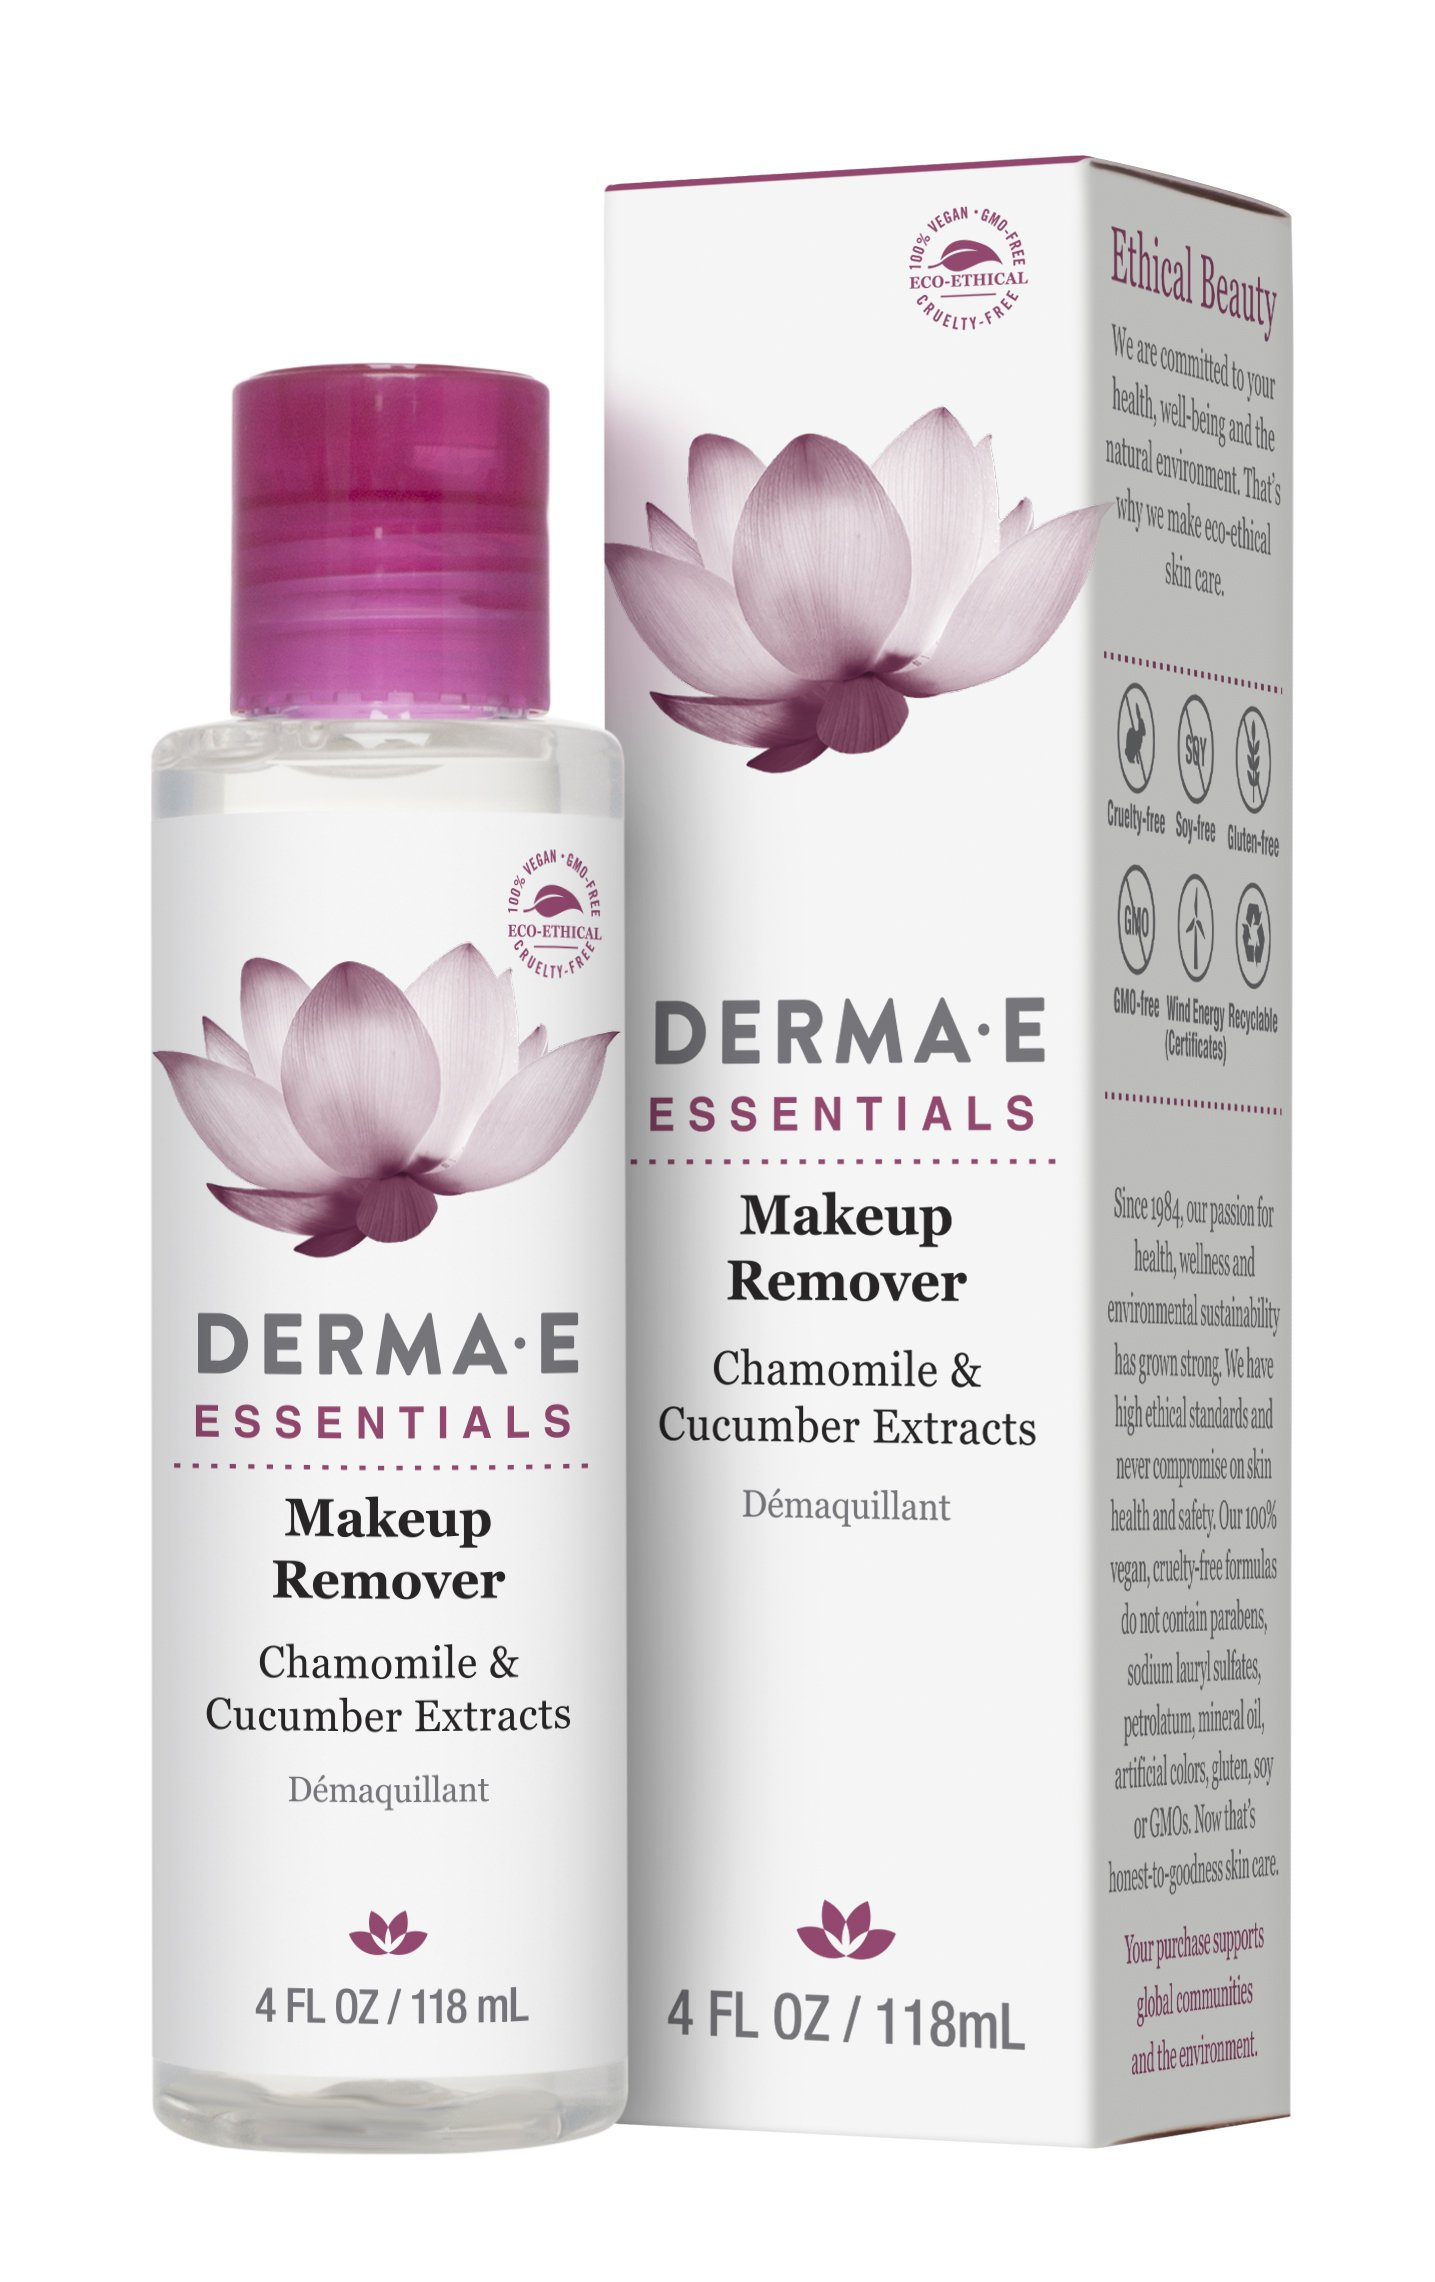 DERMA E Makeup Remover with Chamomile and Cucumber Extracts 4 fl oz by DERMA-E (Image #4)